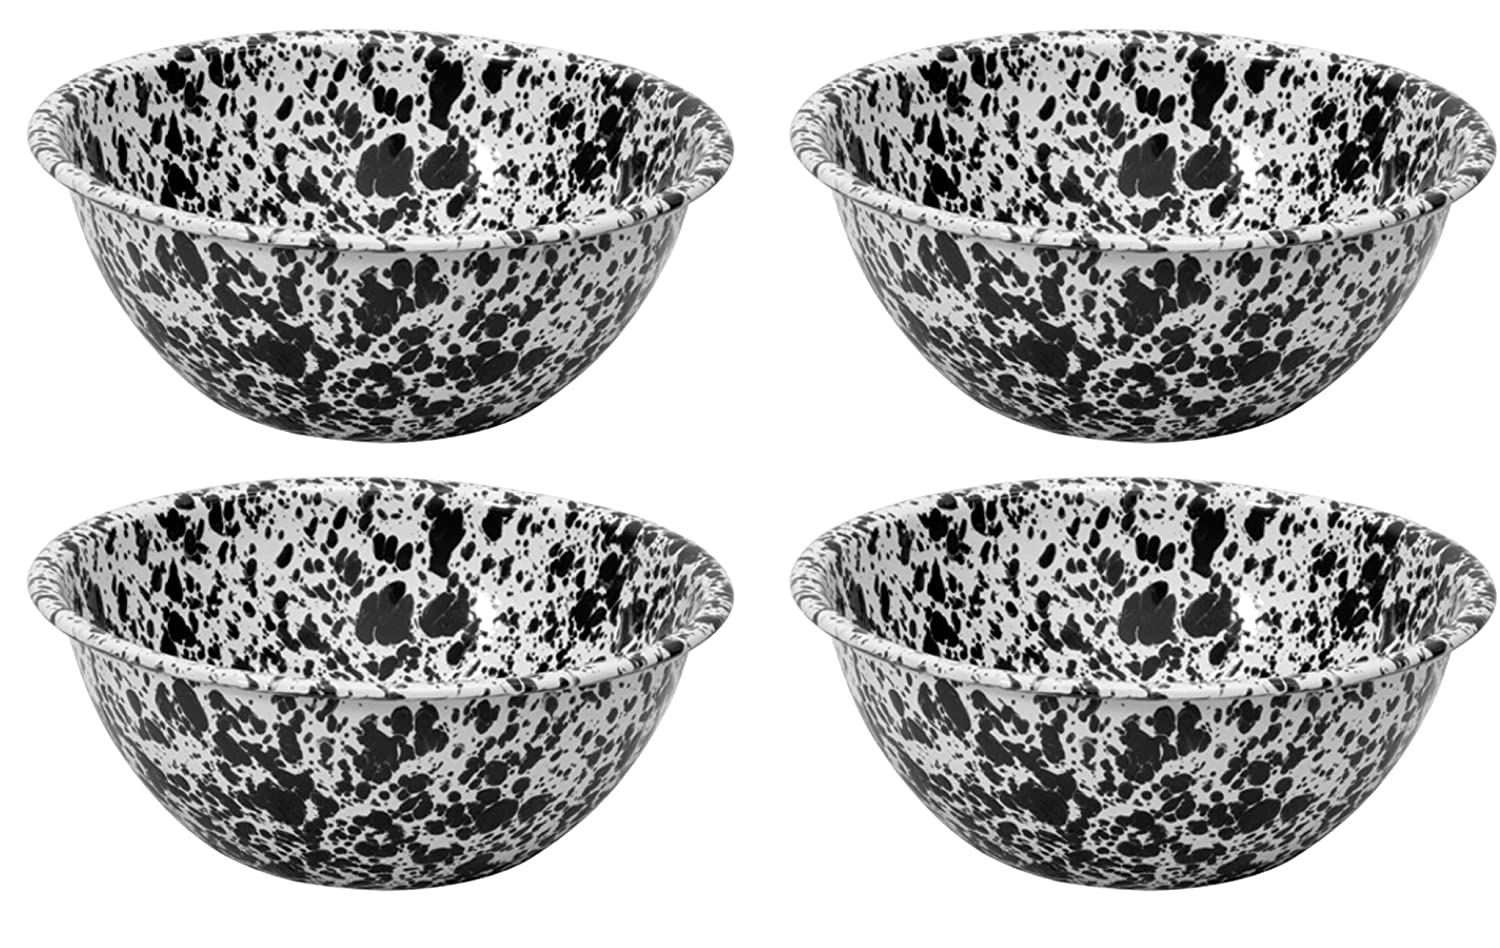 Crow Canyon Enamelware Round Salad//Serving Bowl Black Marble Pattern Set of 4 Classic Tableware 8.5 Inches